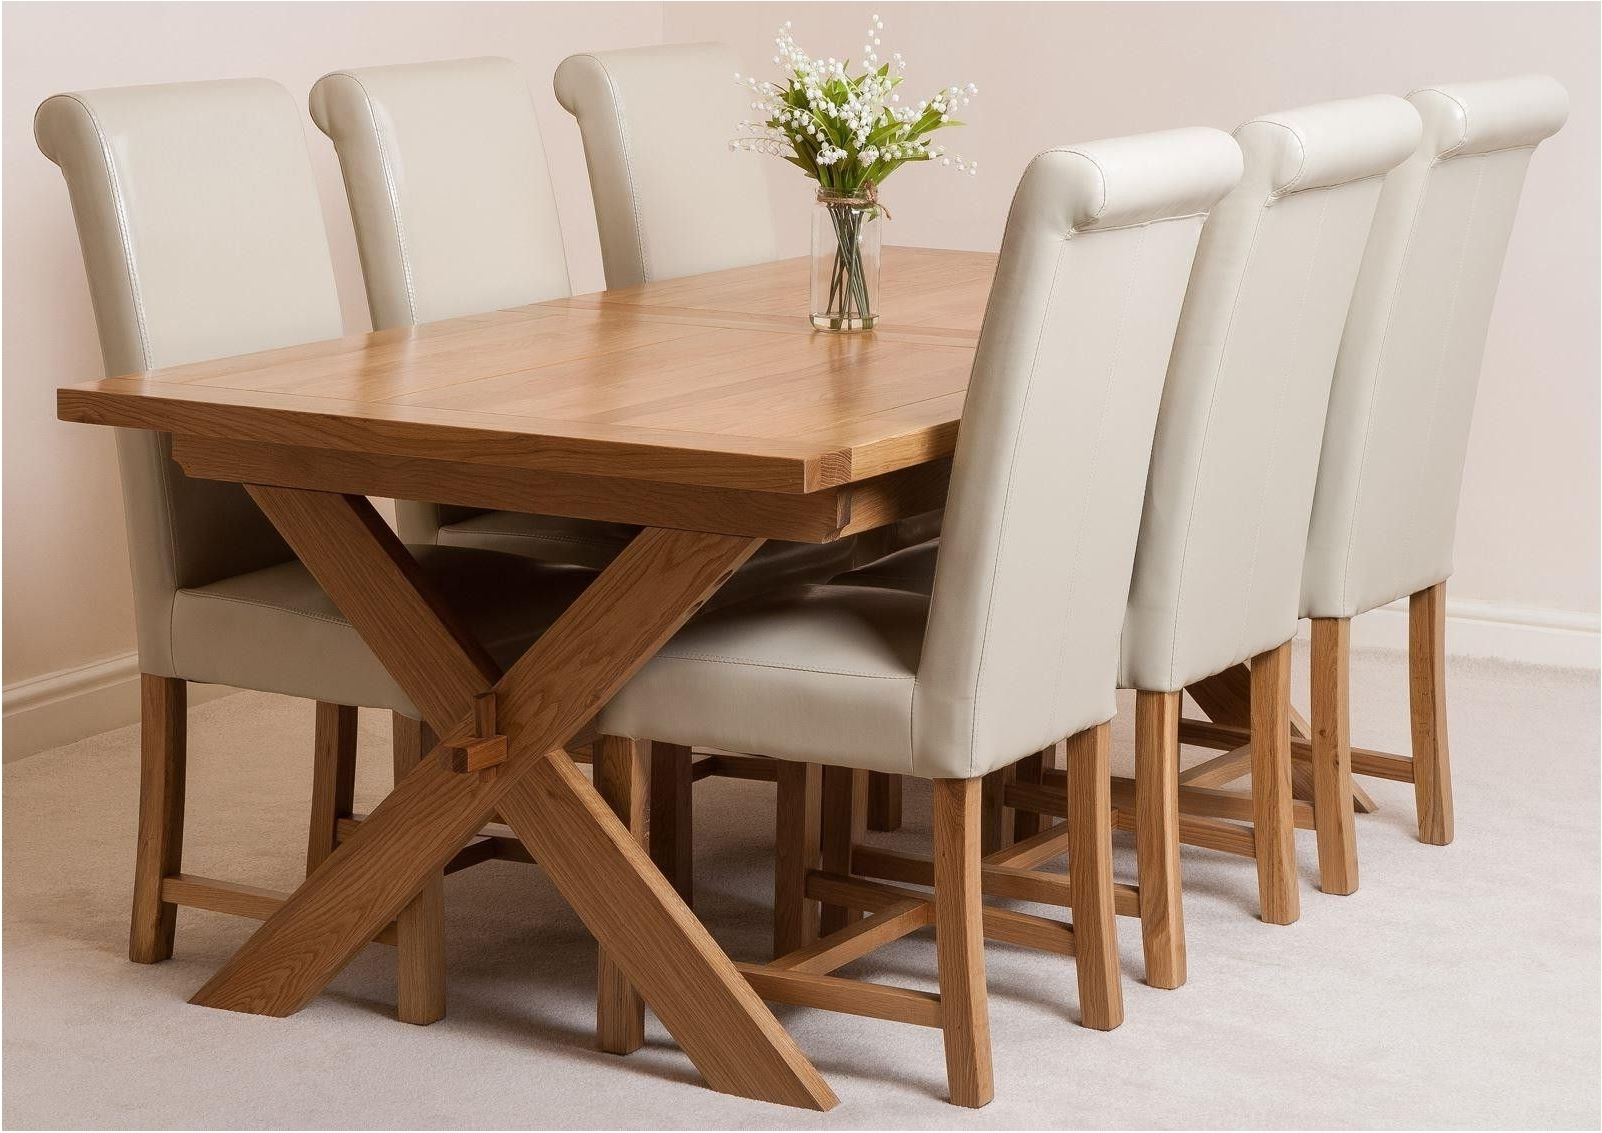 Breathtaking Vermont Extending Oak Dining Table With 6 Black Lola With Regard To Well Known Extendable Oak Dining Tables And Chairs (View 16 of 25)